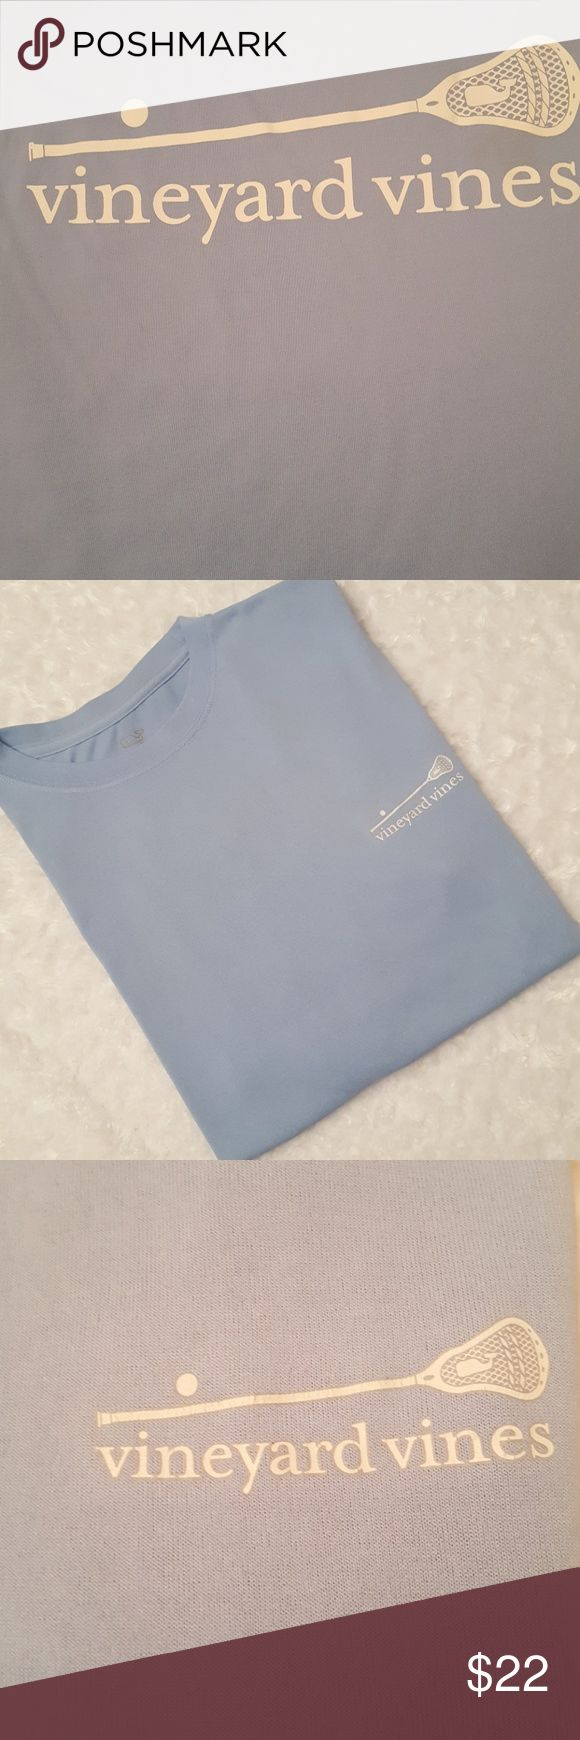 Men's lacrosse Vineyard Vines performance t-shirt! This t-shirt is light blue Vineyard Vines lacrosse performance short sleeved shirt made of 100% polyester. It has light signs of wear and is in guc! Vineyard Vines Shirts Tees - Short Sleeve